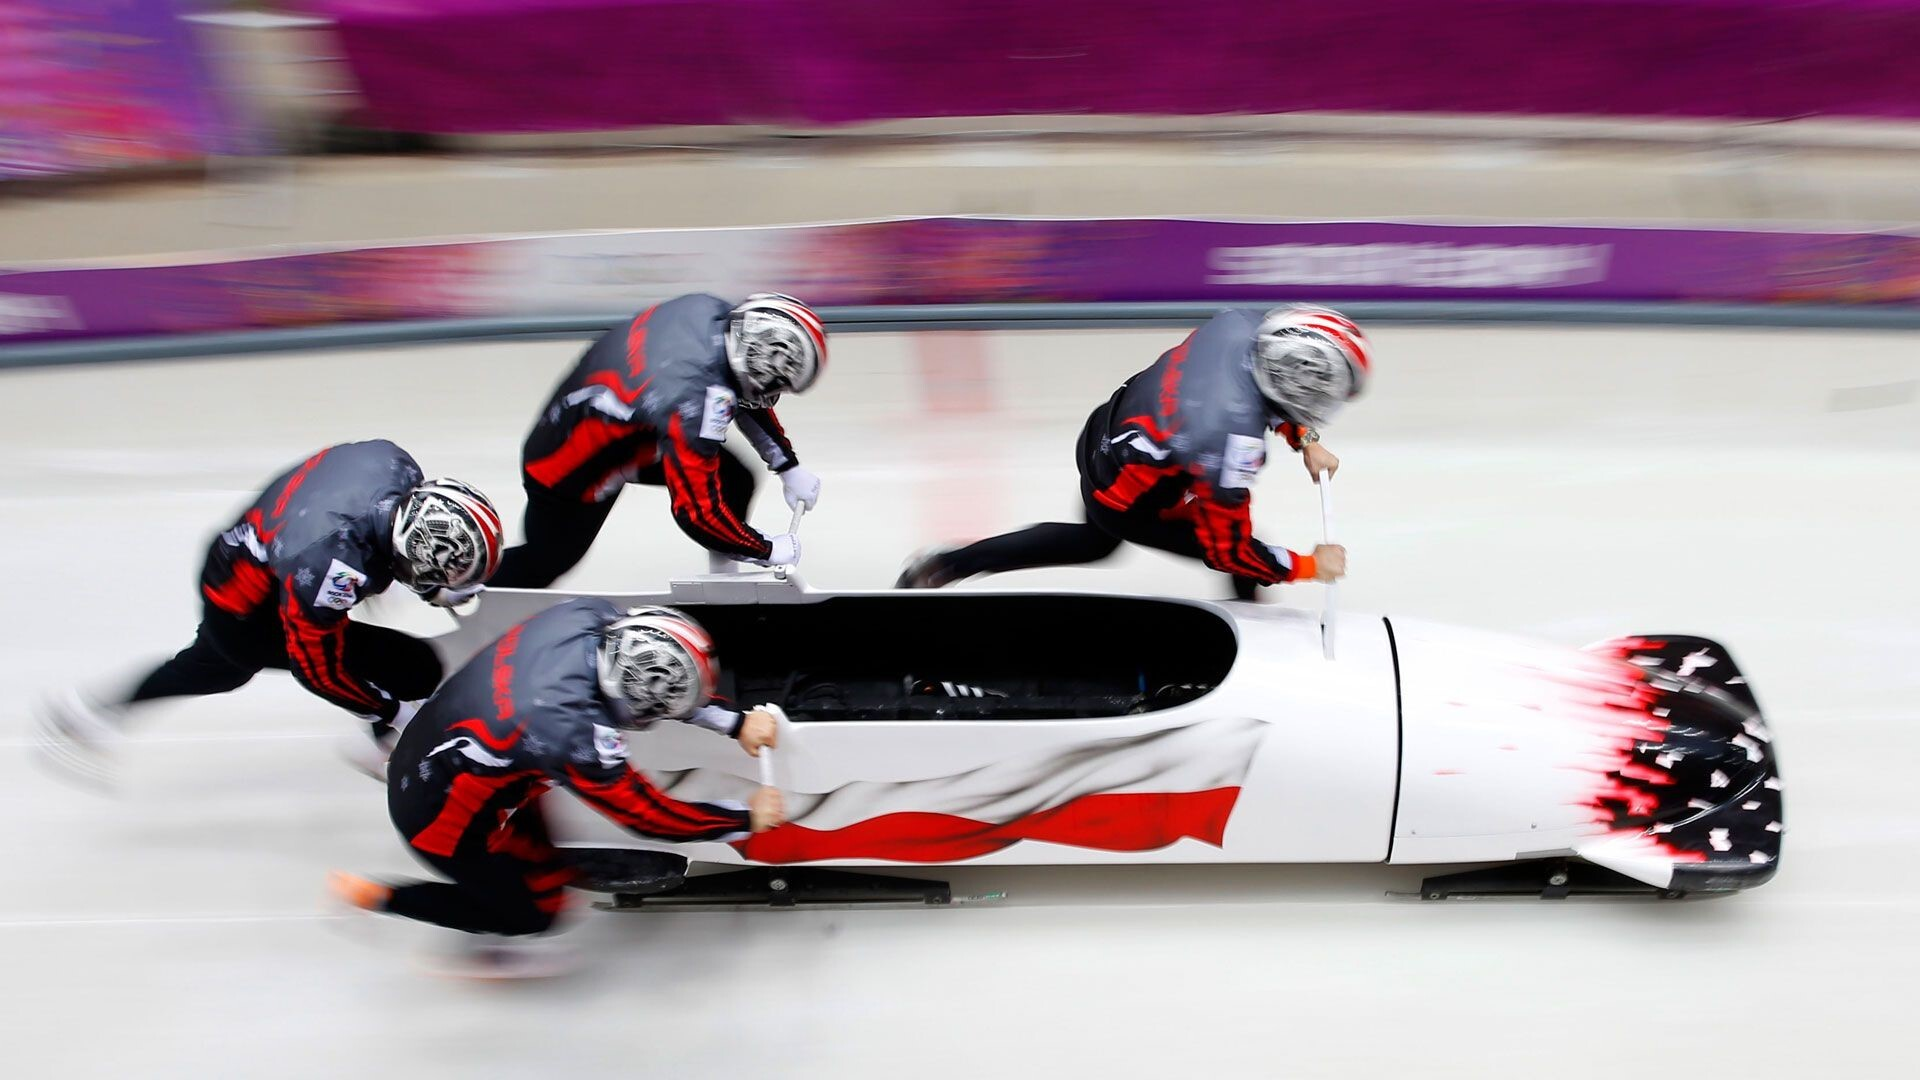 bobsled snow game in olympics 2018 wallpaper hd wallpapers